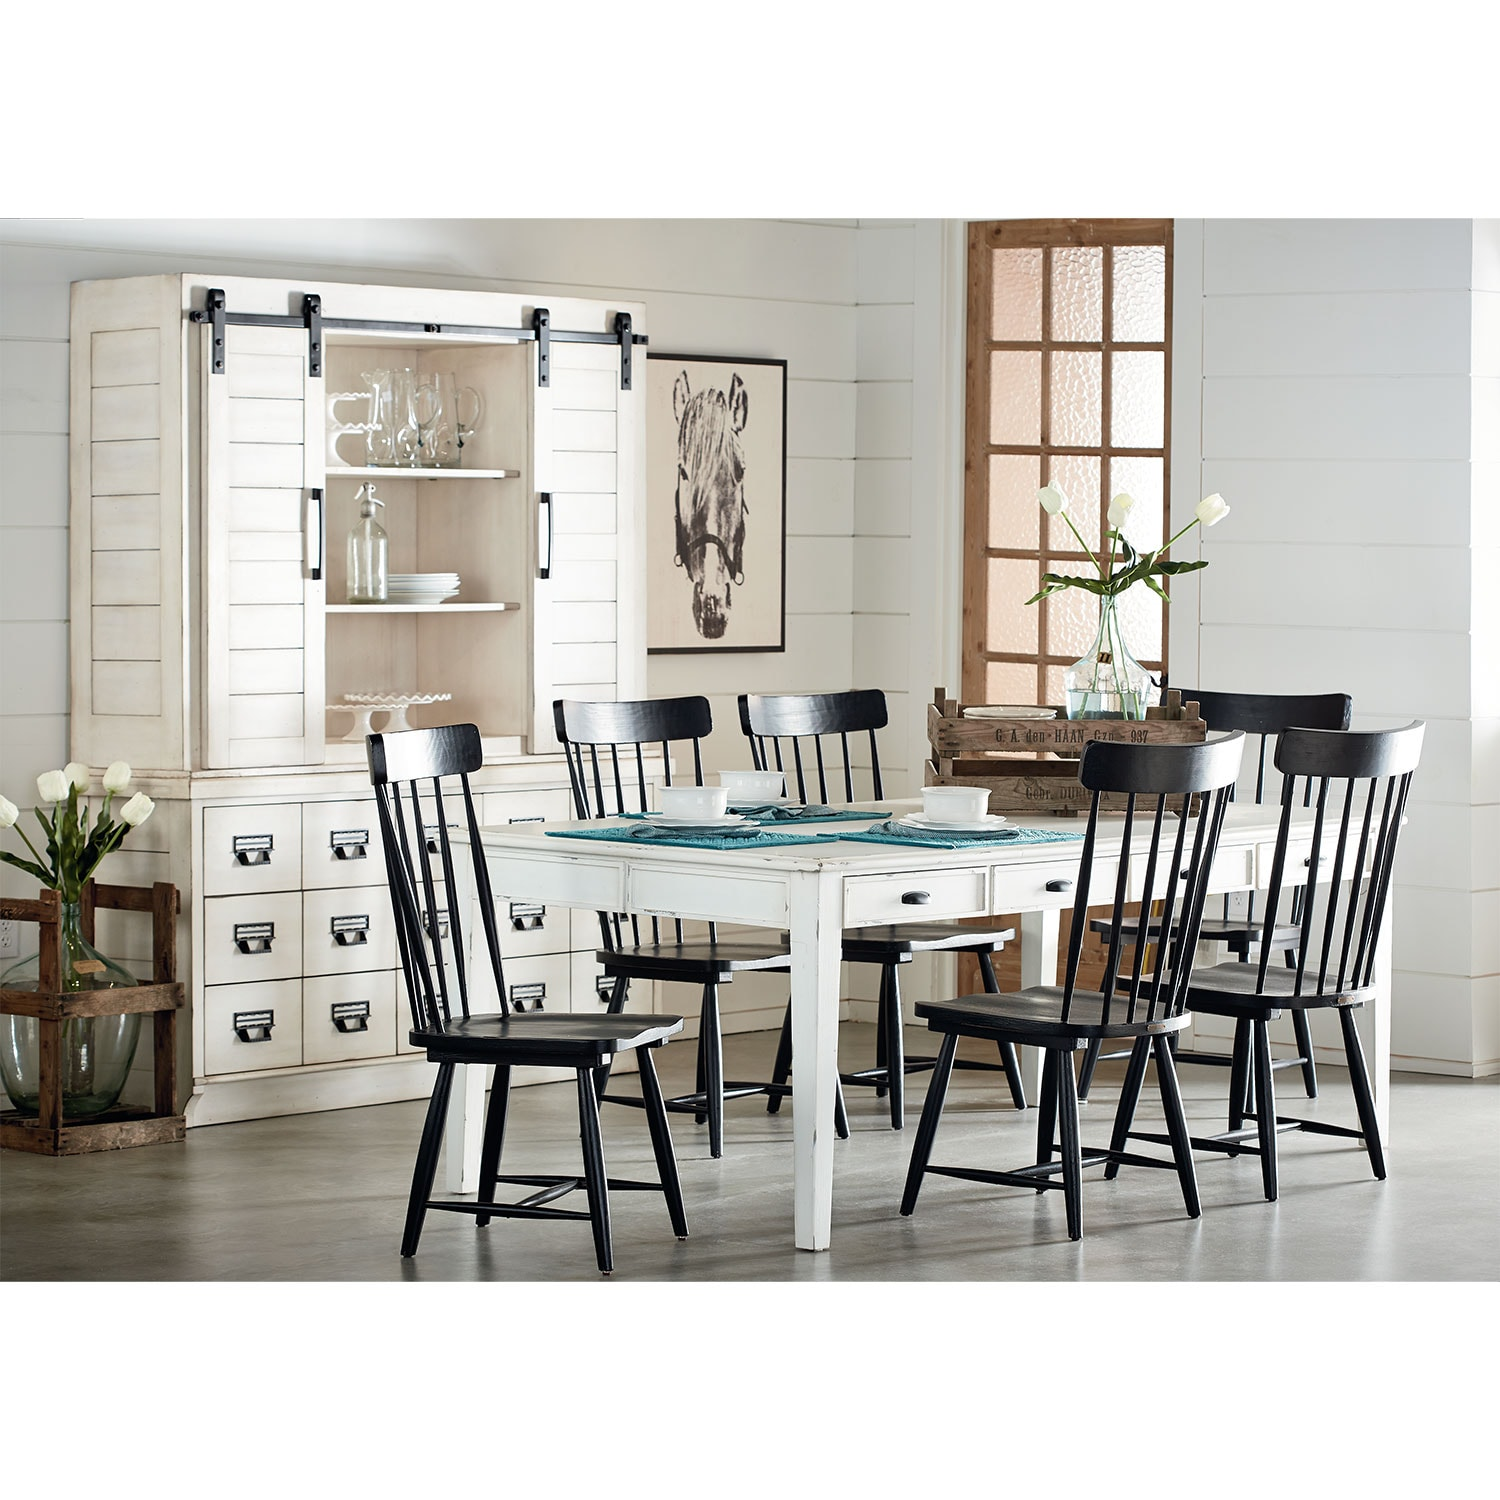 Farm Tables Dining Room: Dining Room Dinette Tables